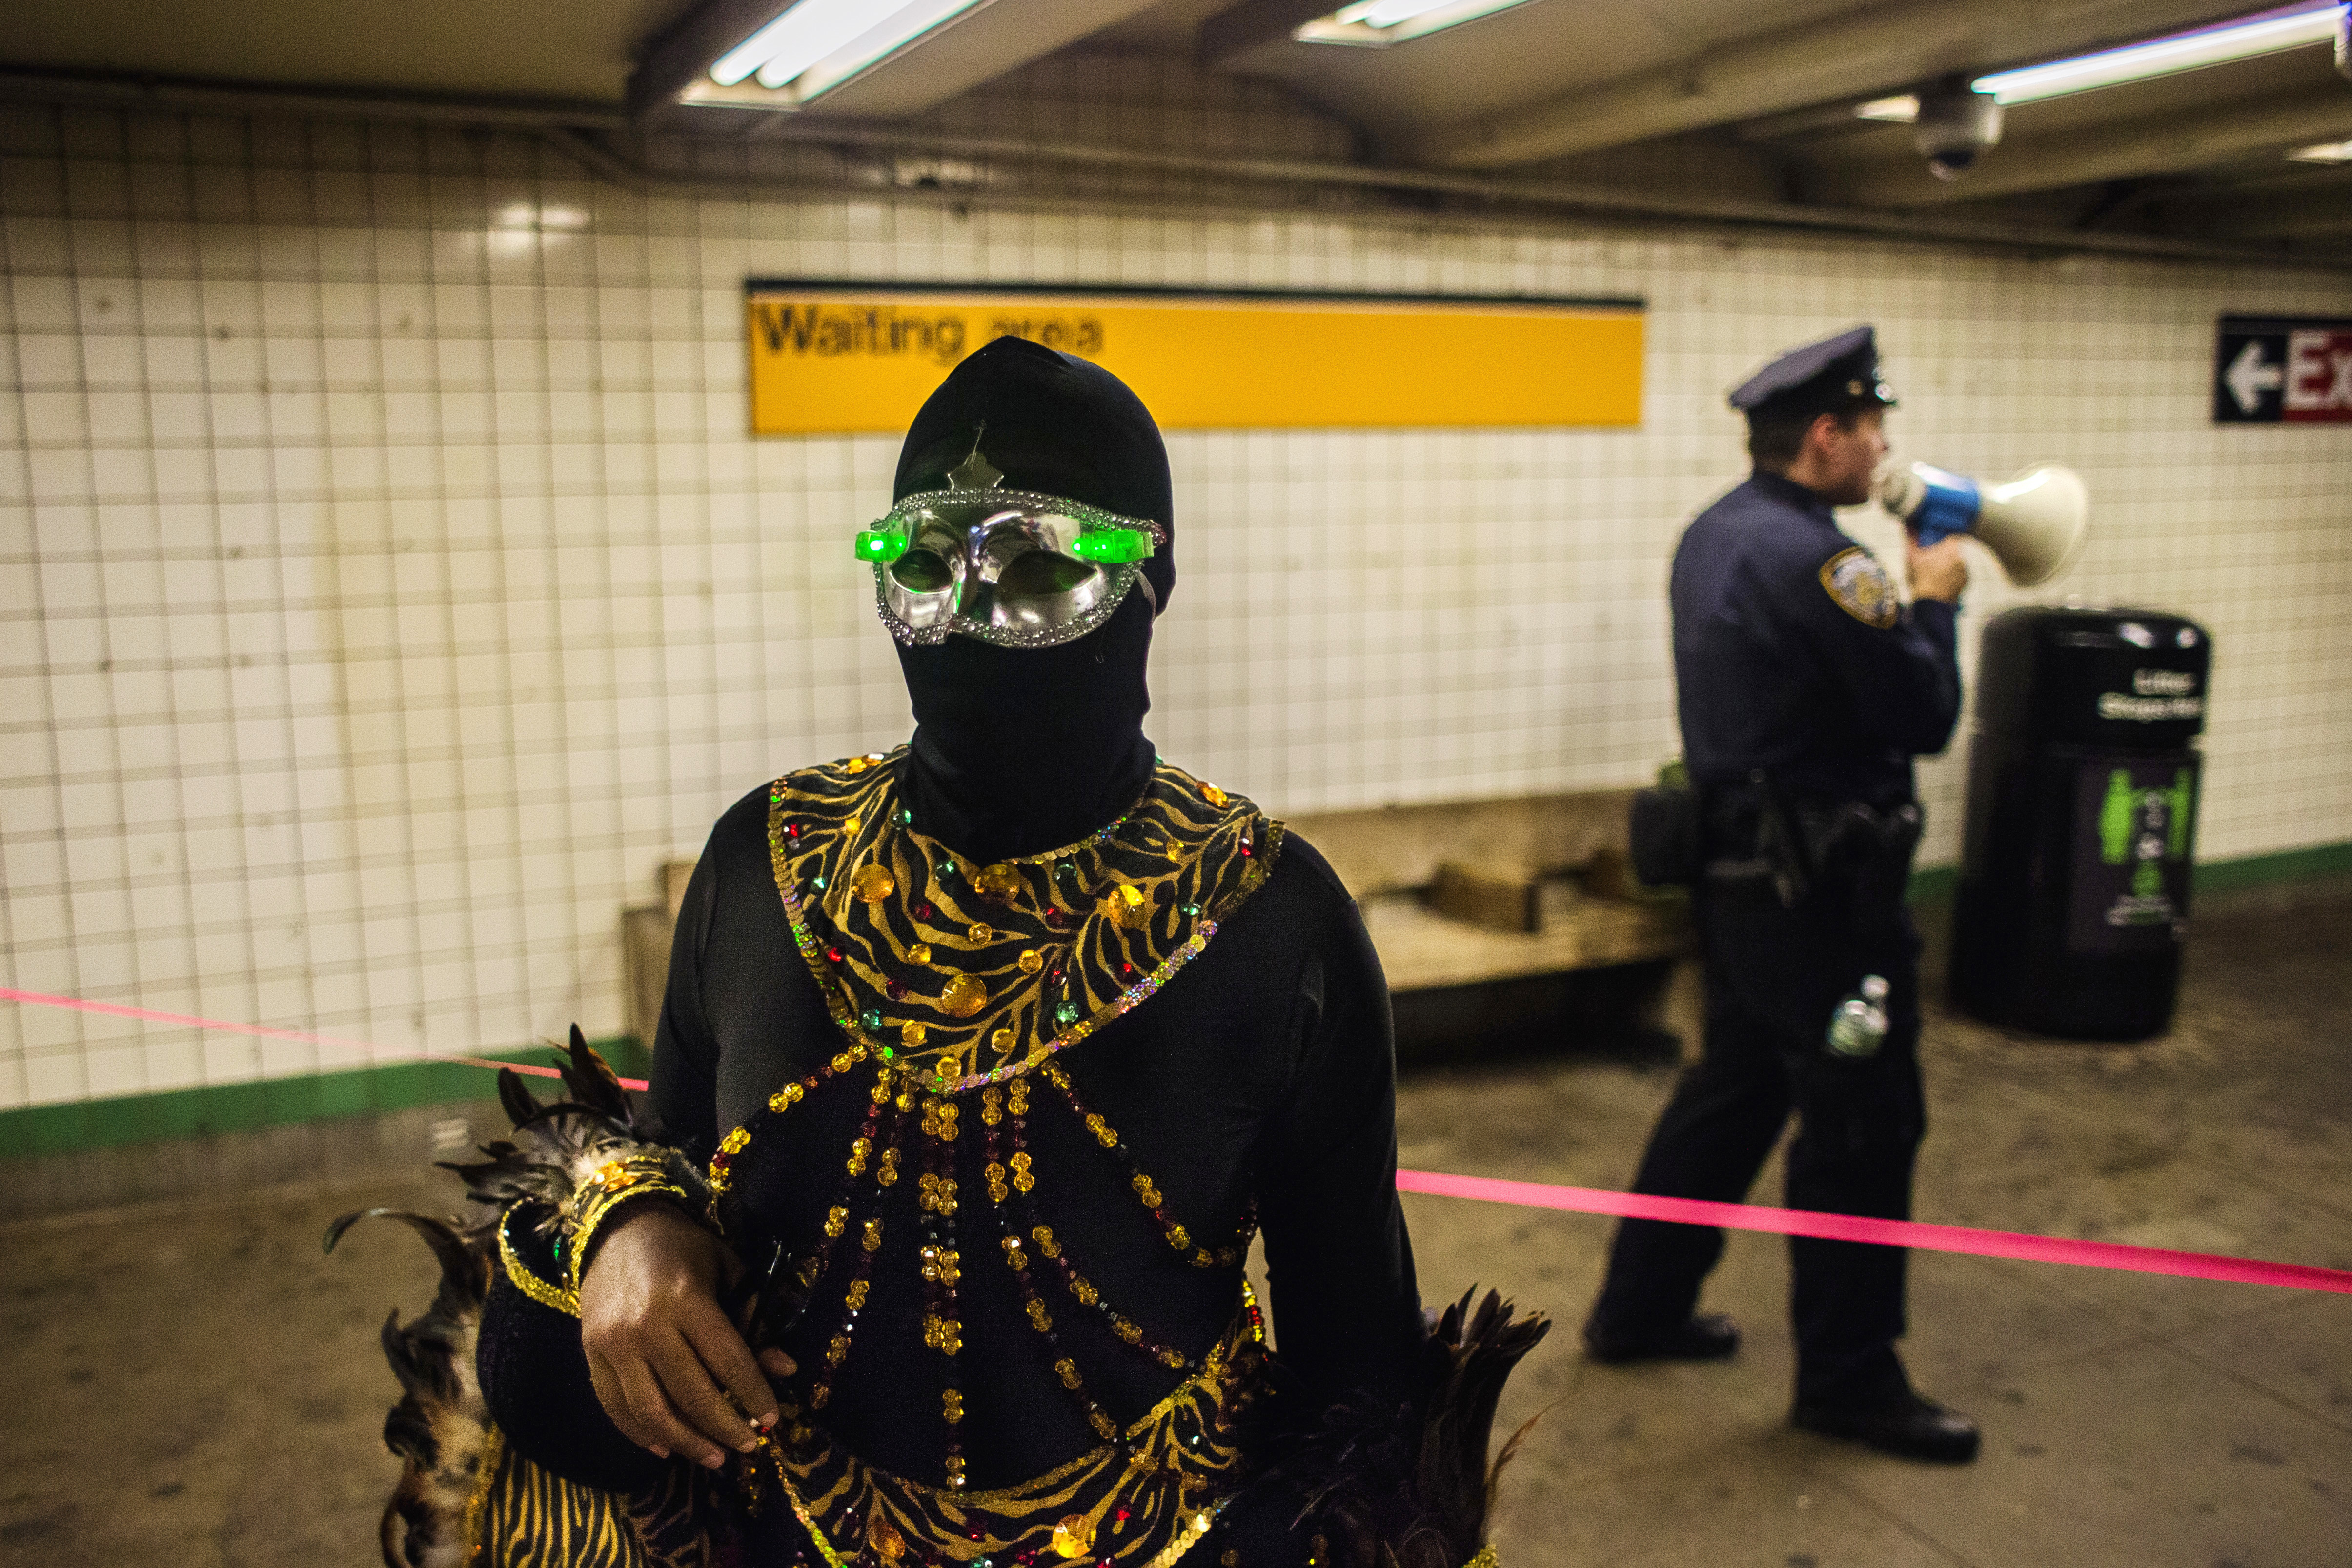 """<div class=""""meta image-caption""""><div class=""""origin-logo origin-image none""""><span>none</span></div><span class=""""caption-text"""">A reveler stands inside the subway station as a police officer speaks into a megaphone after the Greenwich Village Halloween Parade in New York, Monday, Oct. 31, 2016. (AP Photo/Andres Kudacki)</span></div>"""